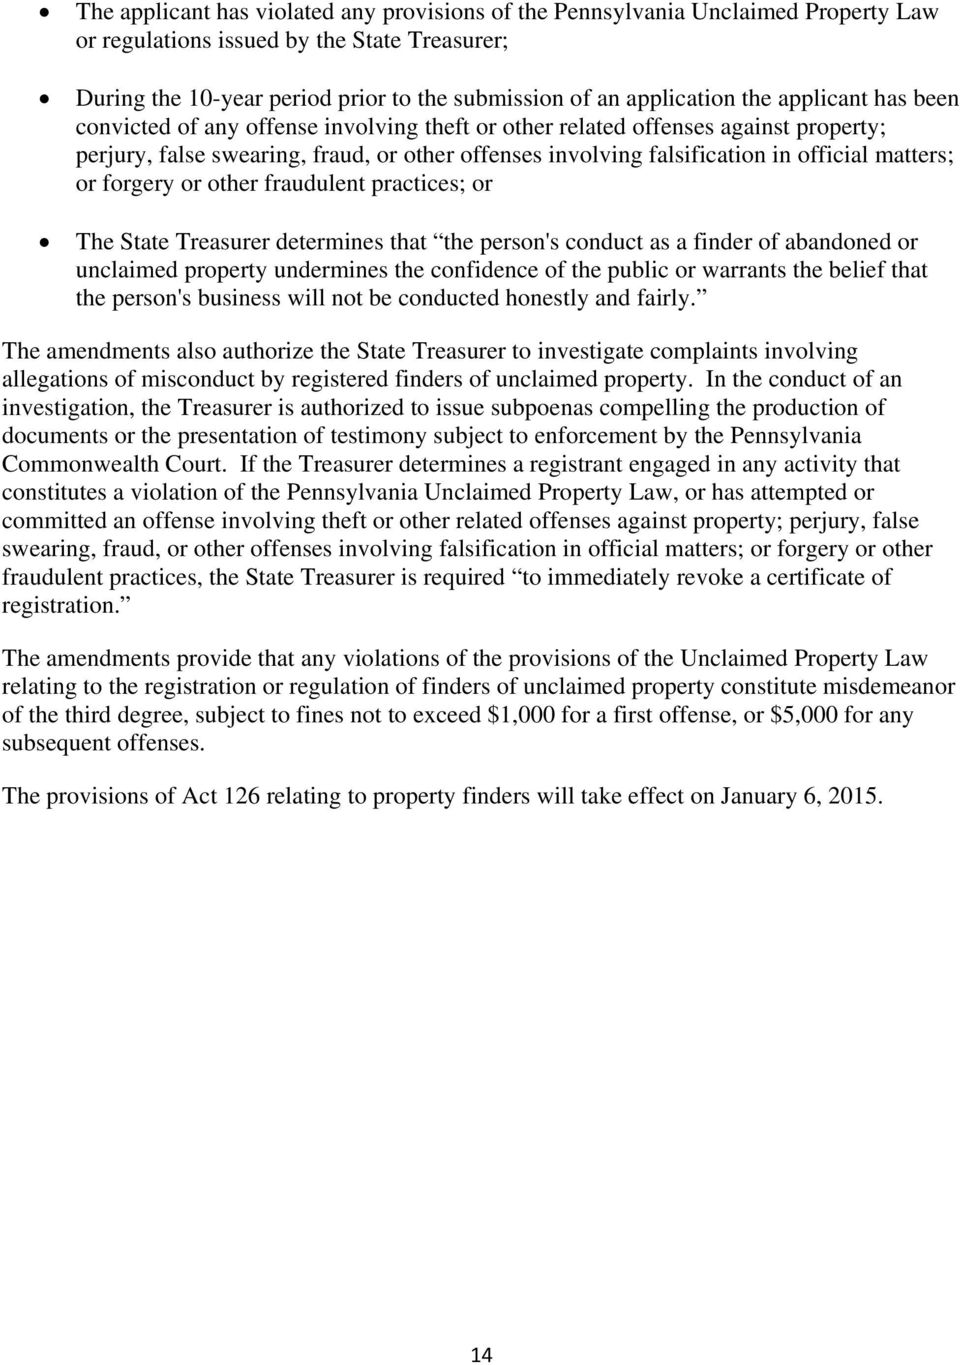 matters; or forgery or other fraudulent practices; or The State Treasurer determines that the person's conduct as a finder of abandoned or unclaimed property undermines the confidence of the public